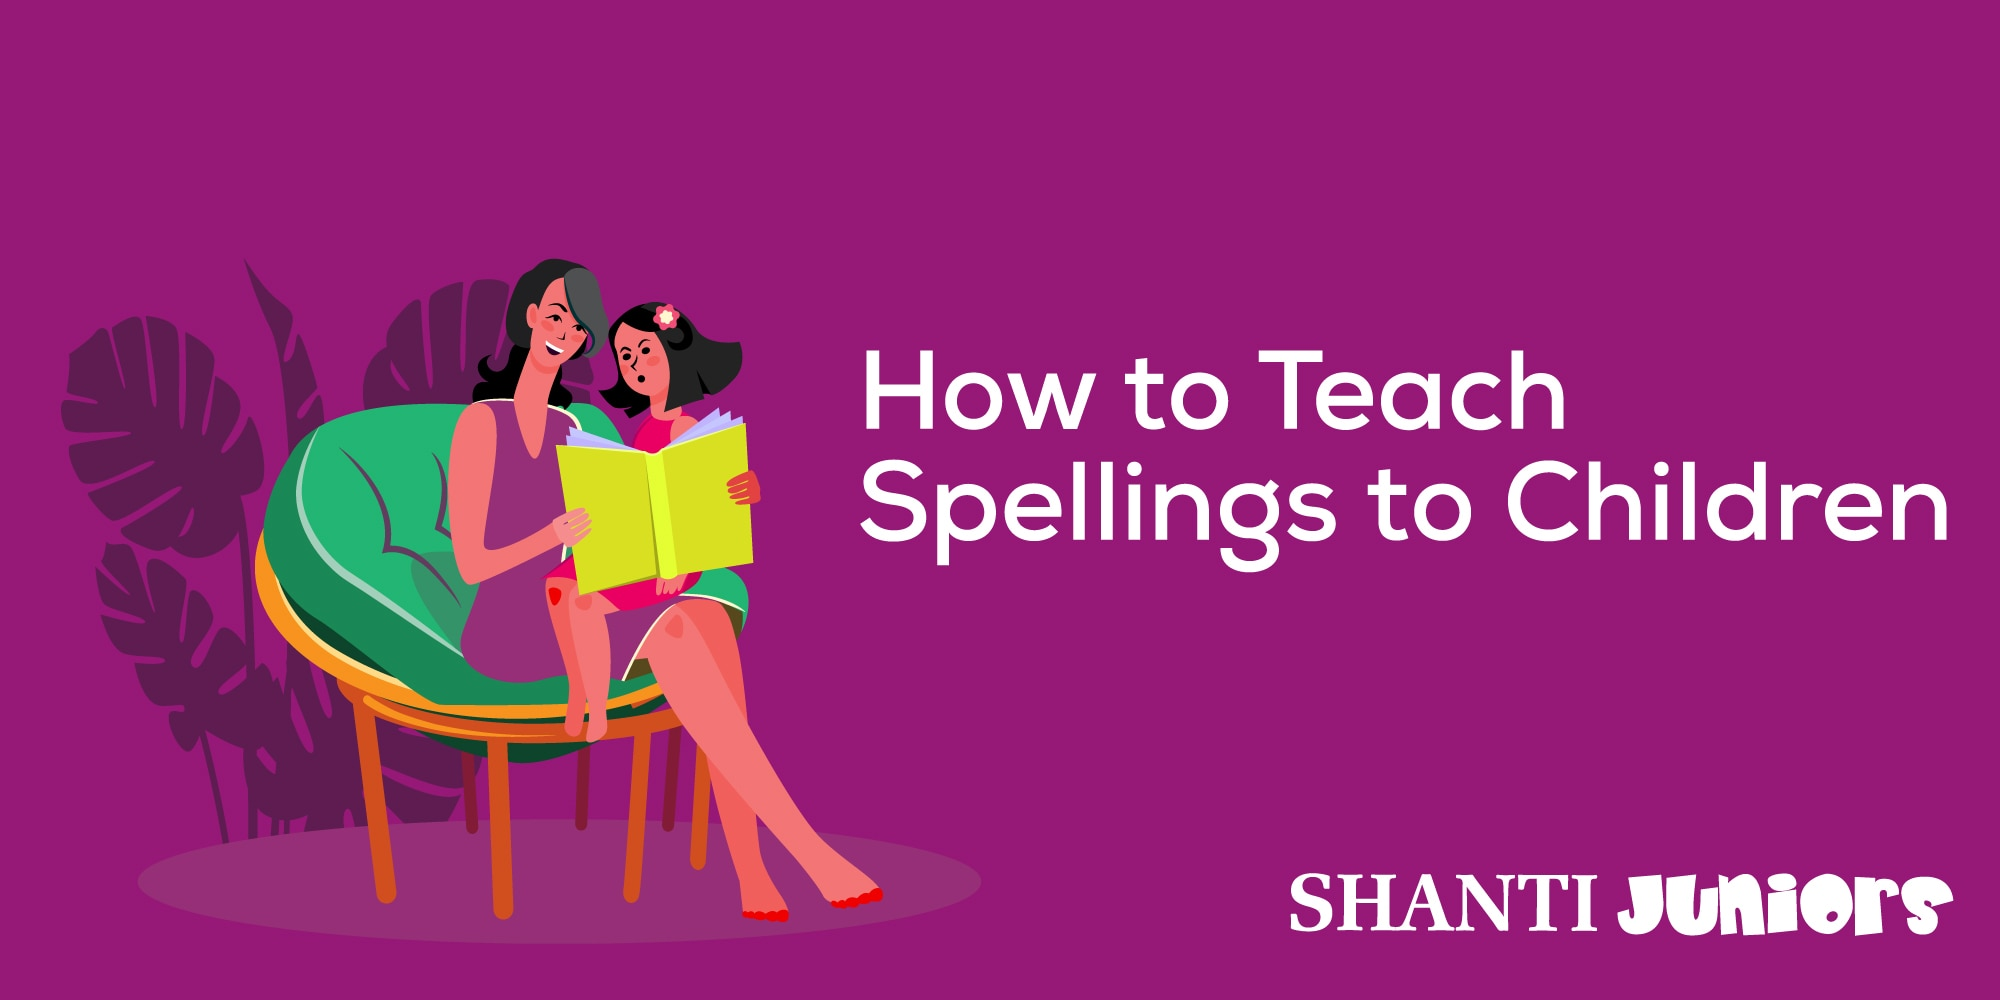 How to Teach Spellings to Children